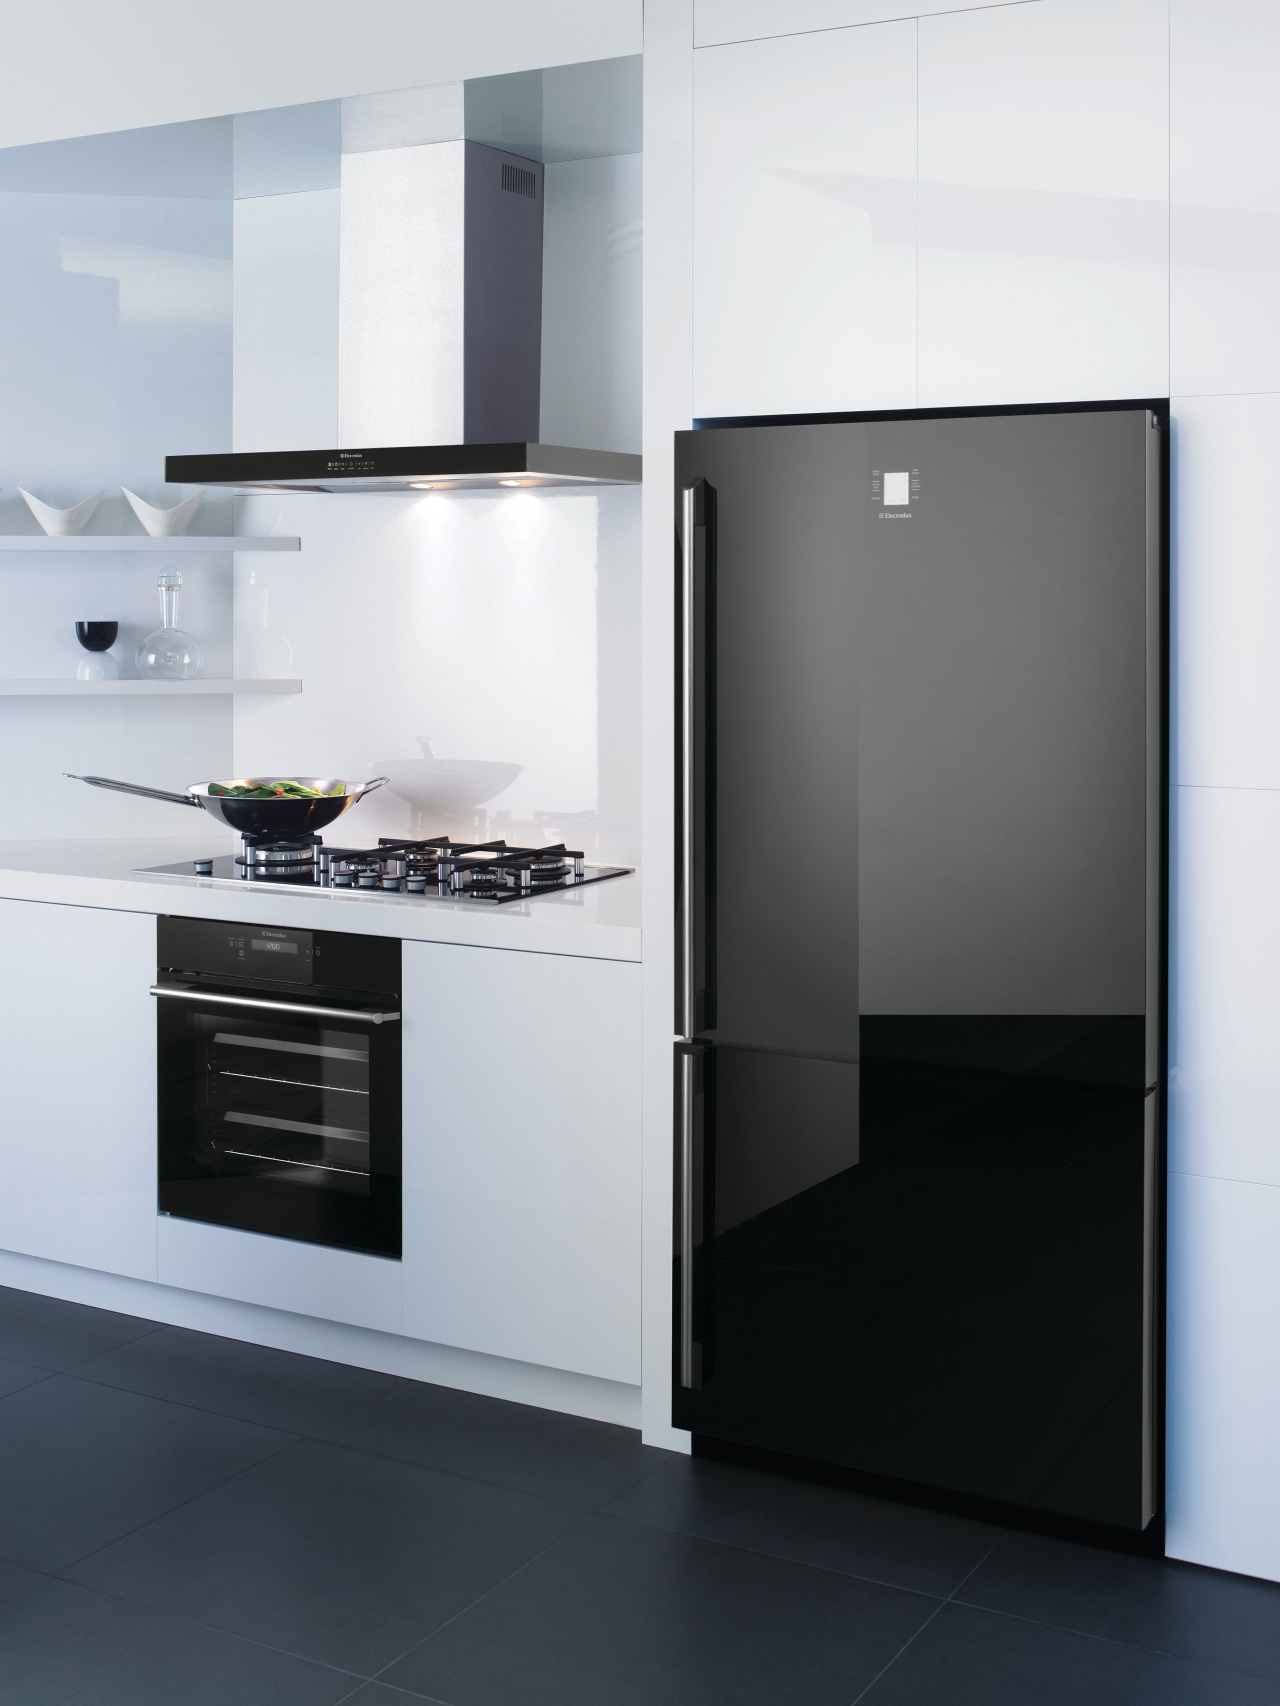 View of a kitchen which features a refrigerator, home appliance, interior design, kitchen, kitchen appliance, kitchen stove, major appliance, product, product design, refrigerator, white, black